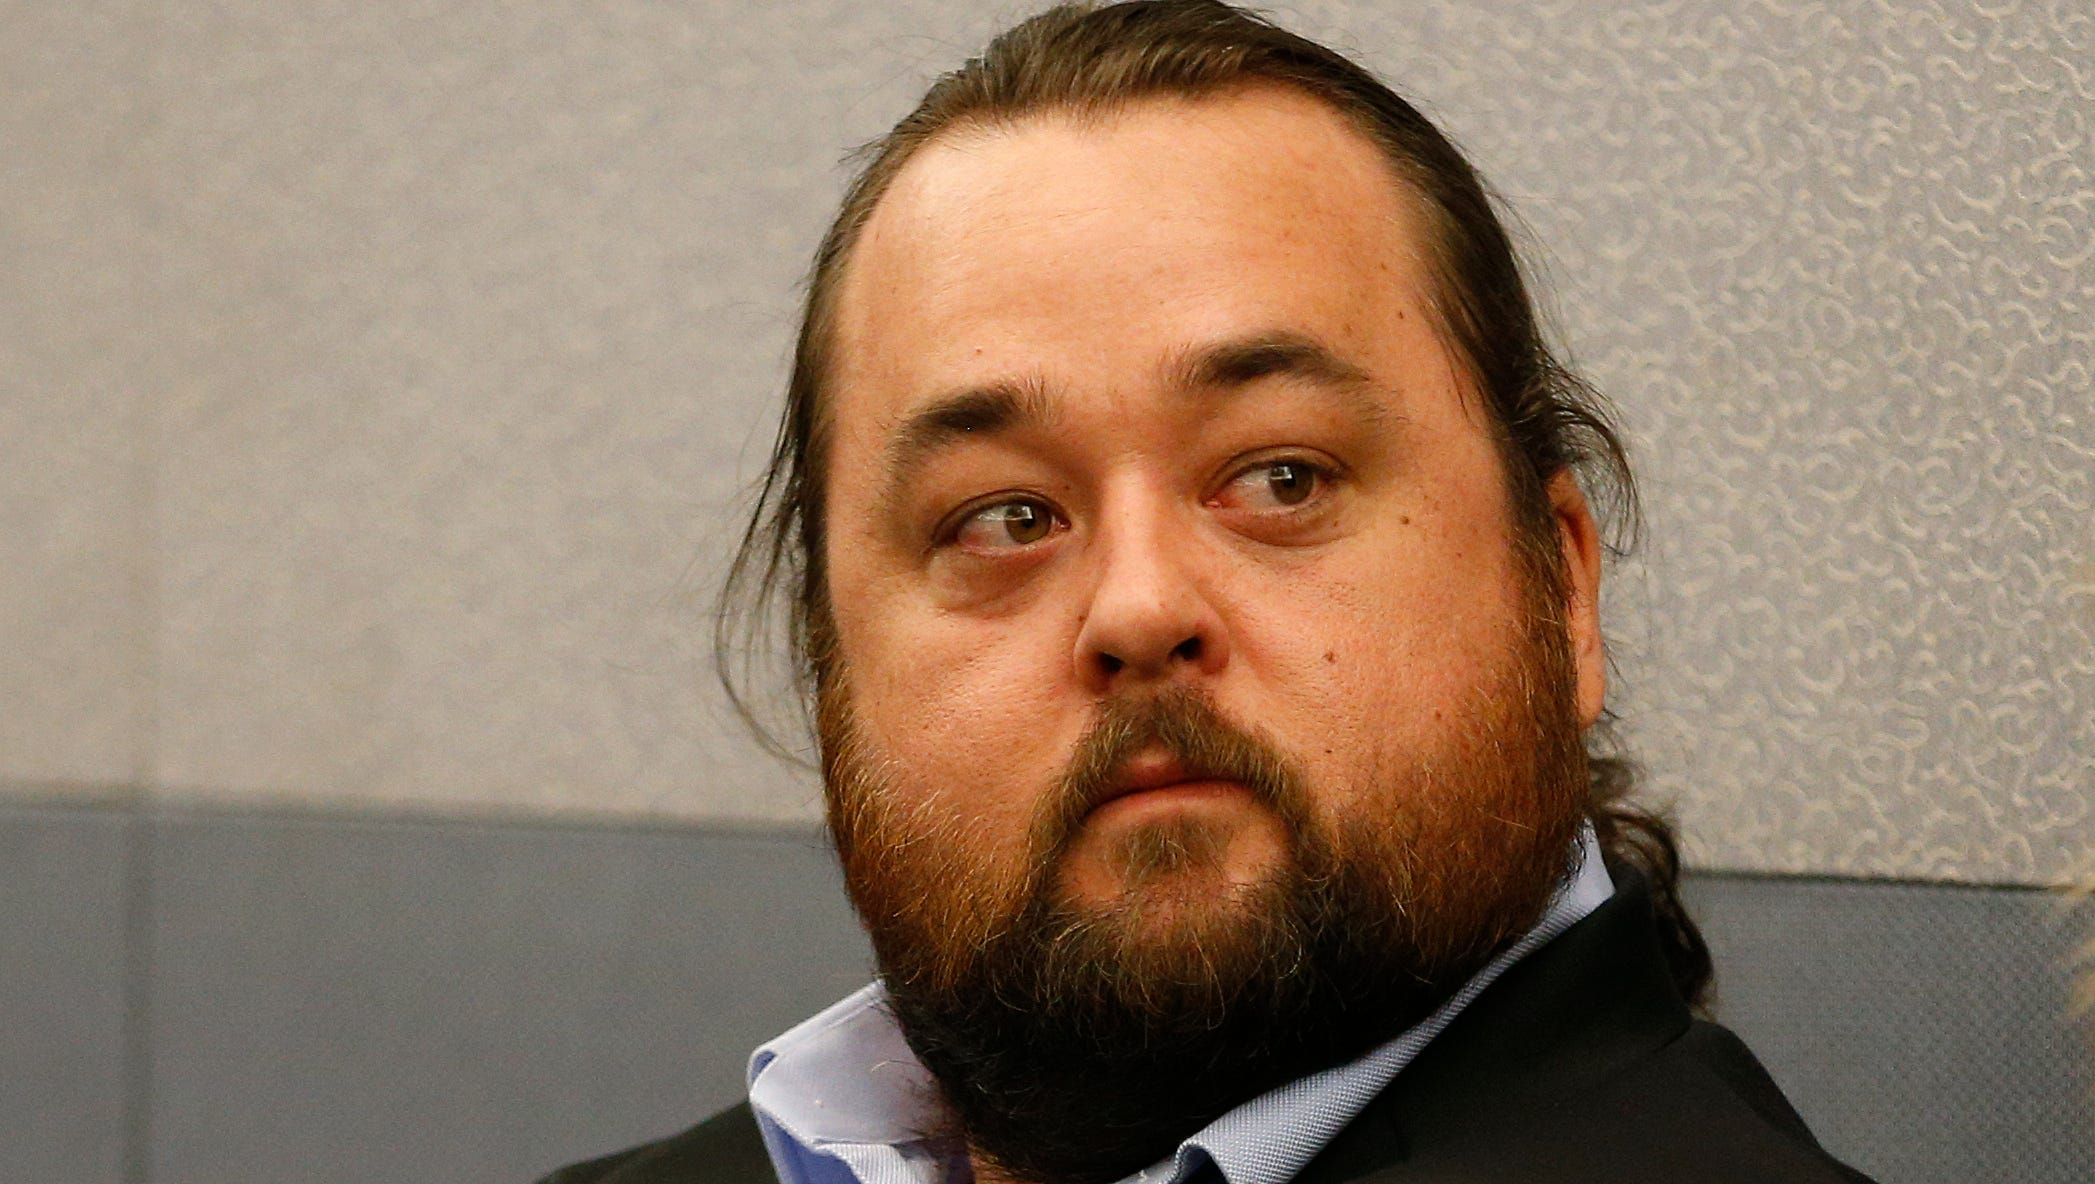 Chumlee net worth